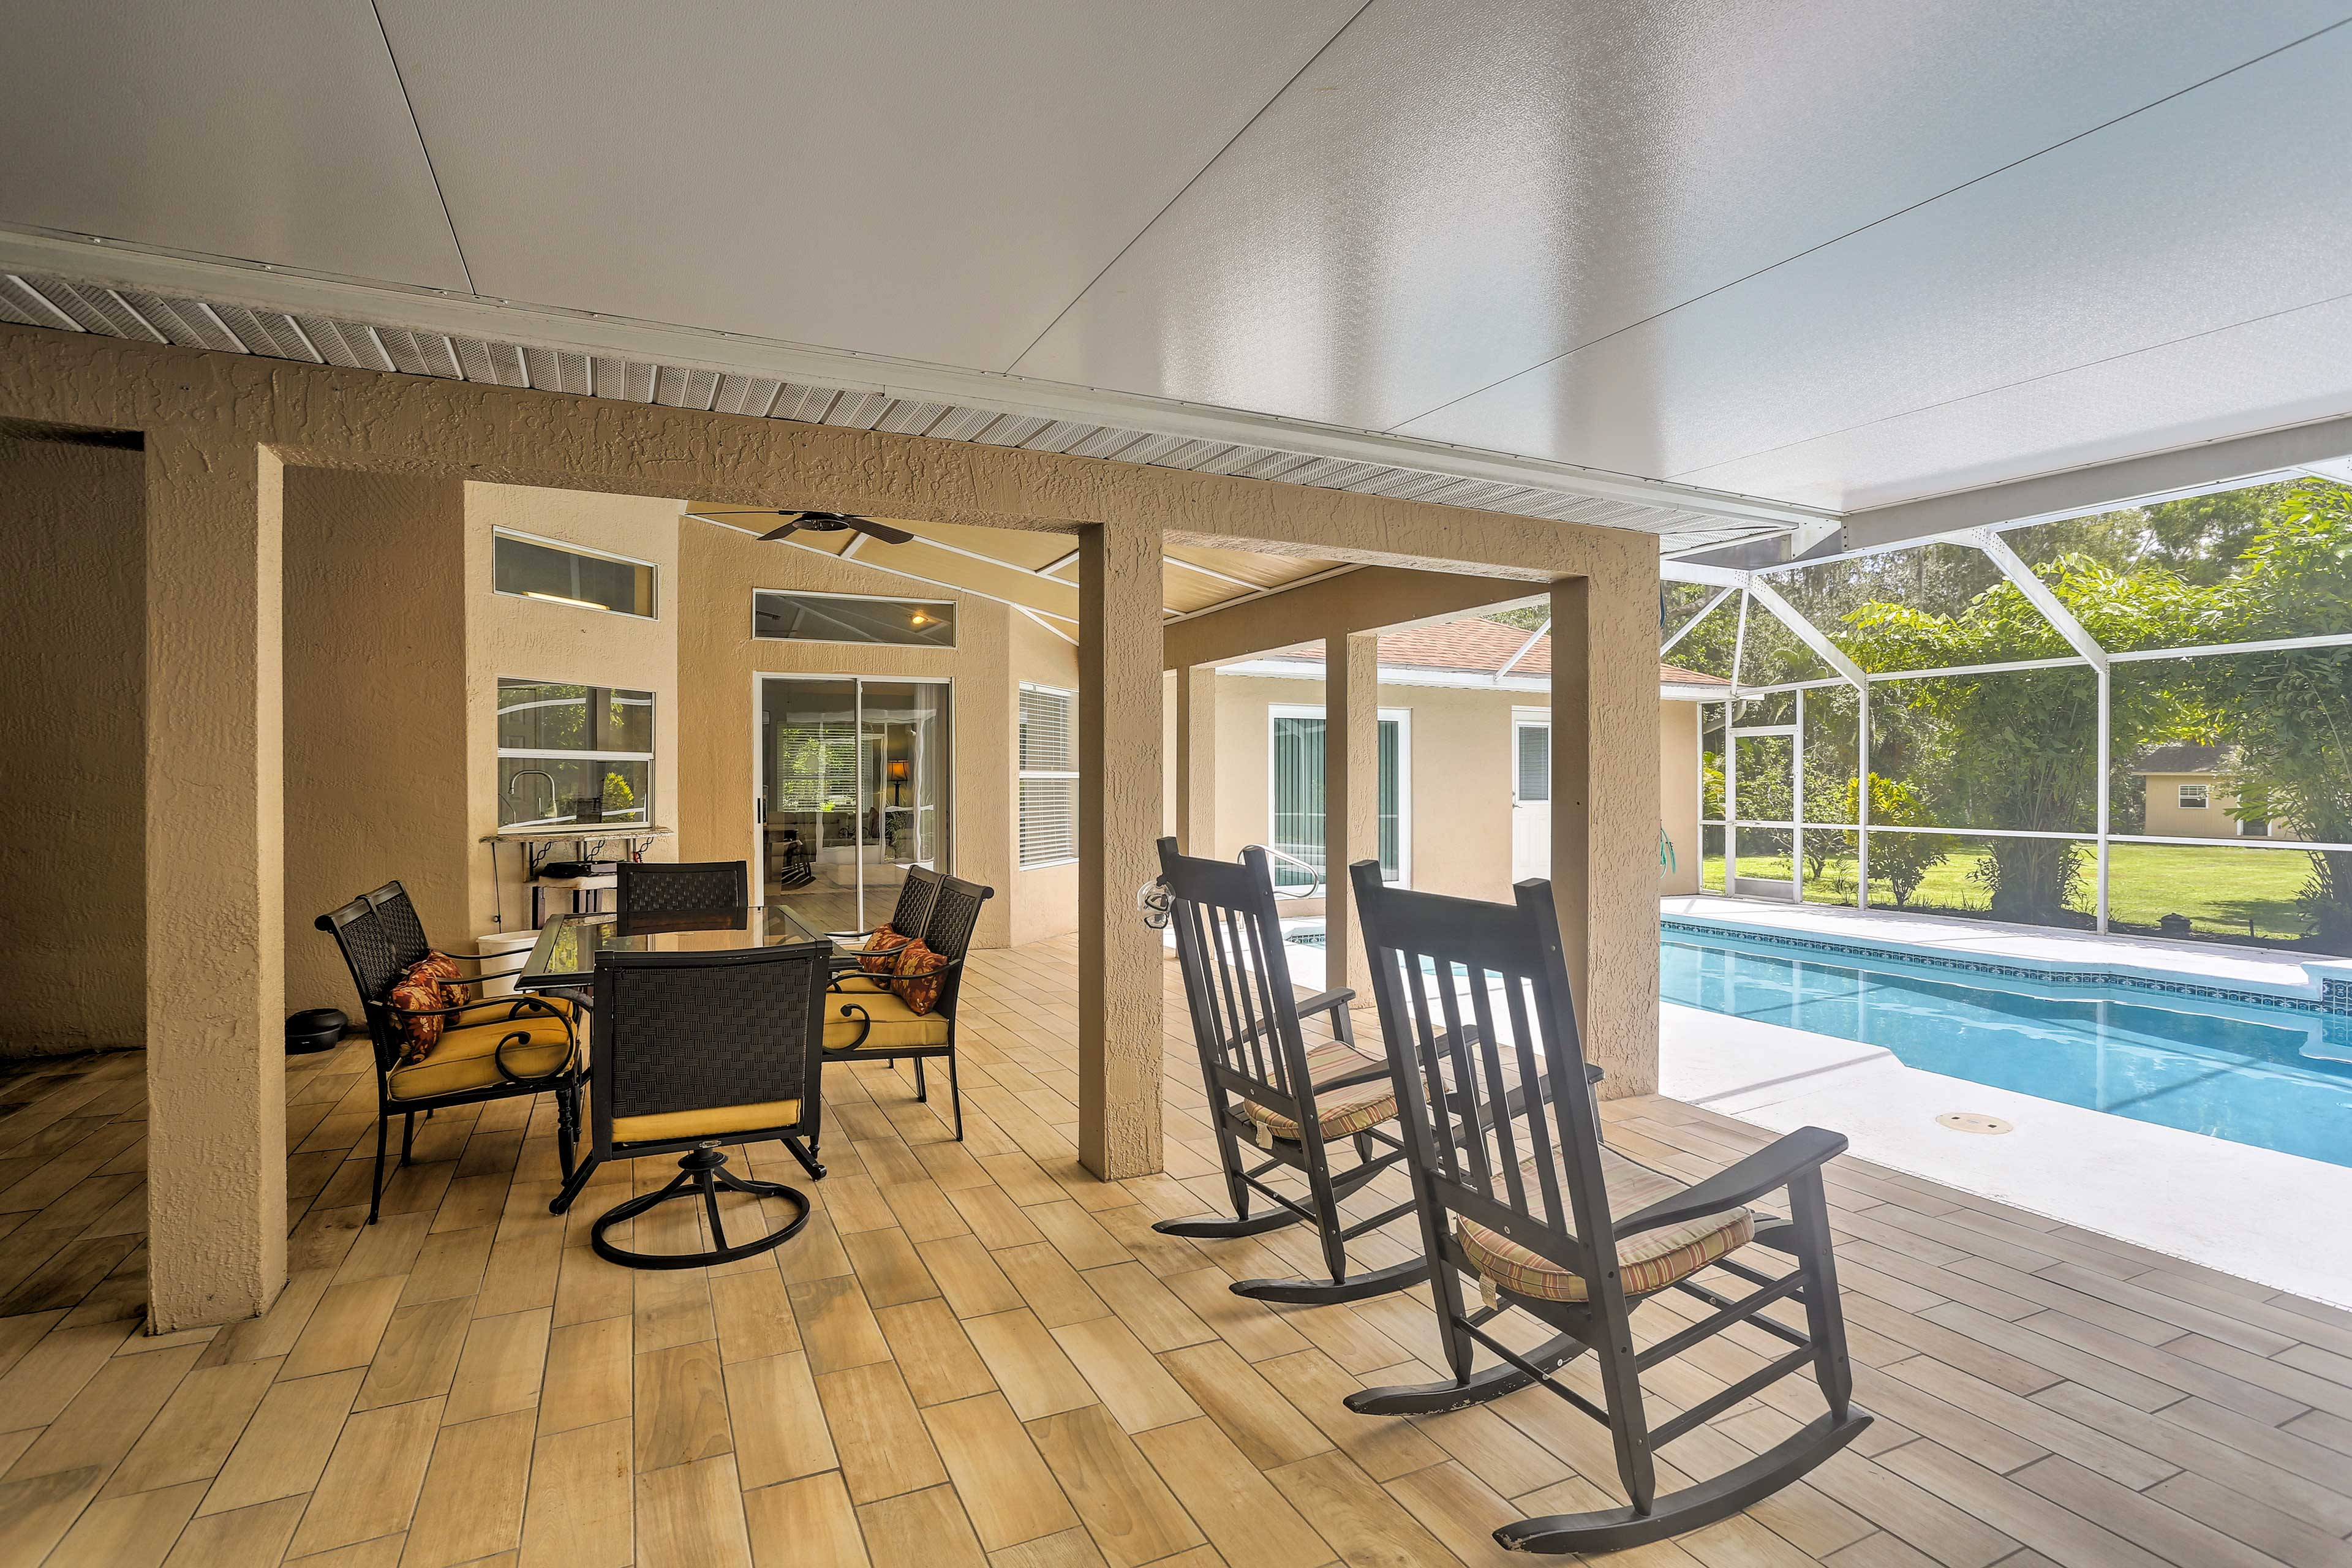 Lanai | Outdoor Dining Table | Rocking Chairs | Ceiling Fan